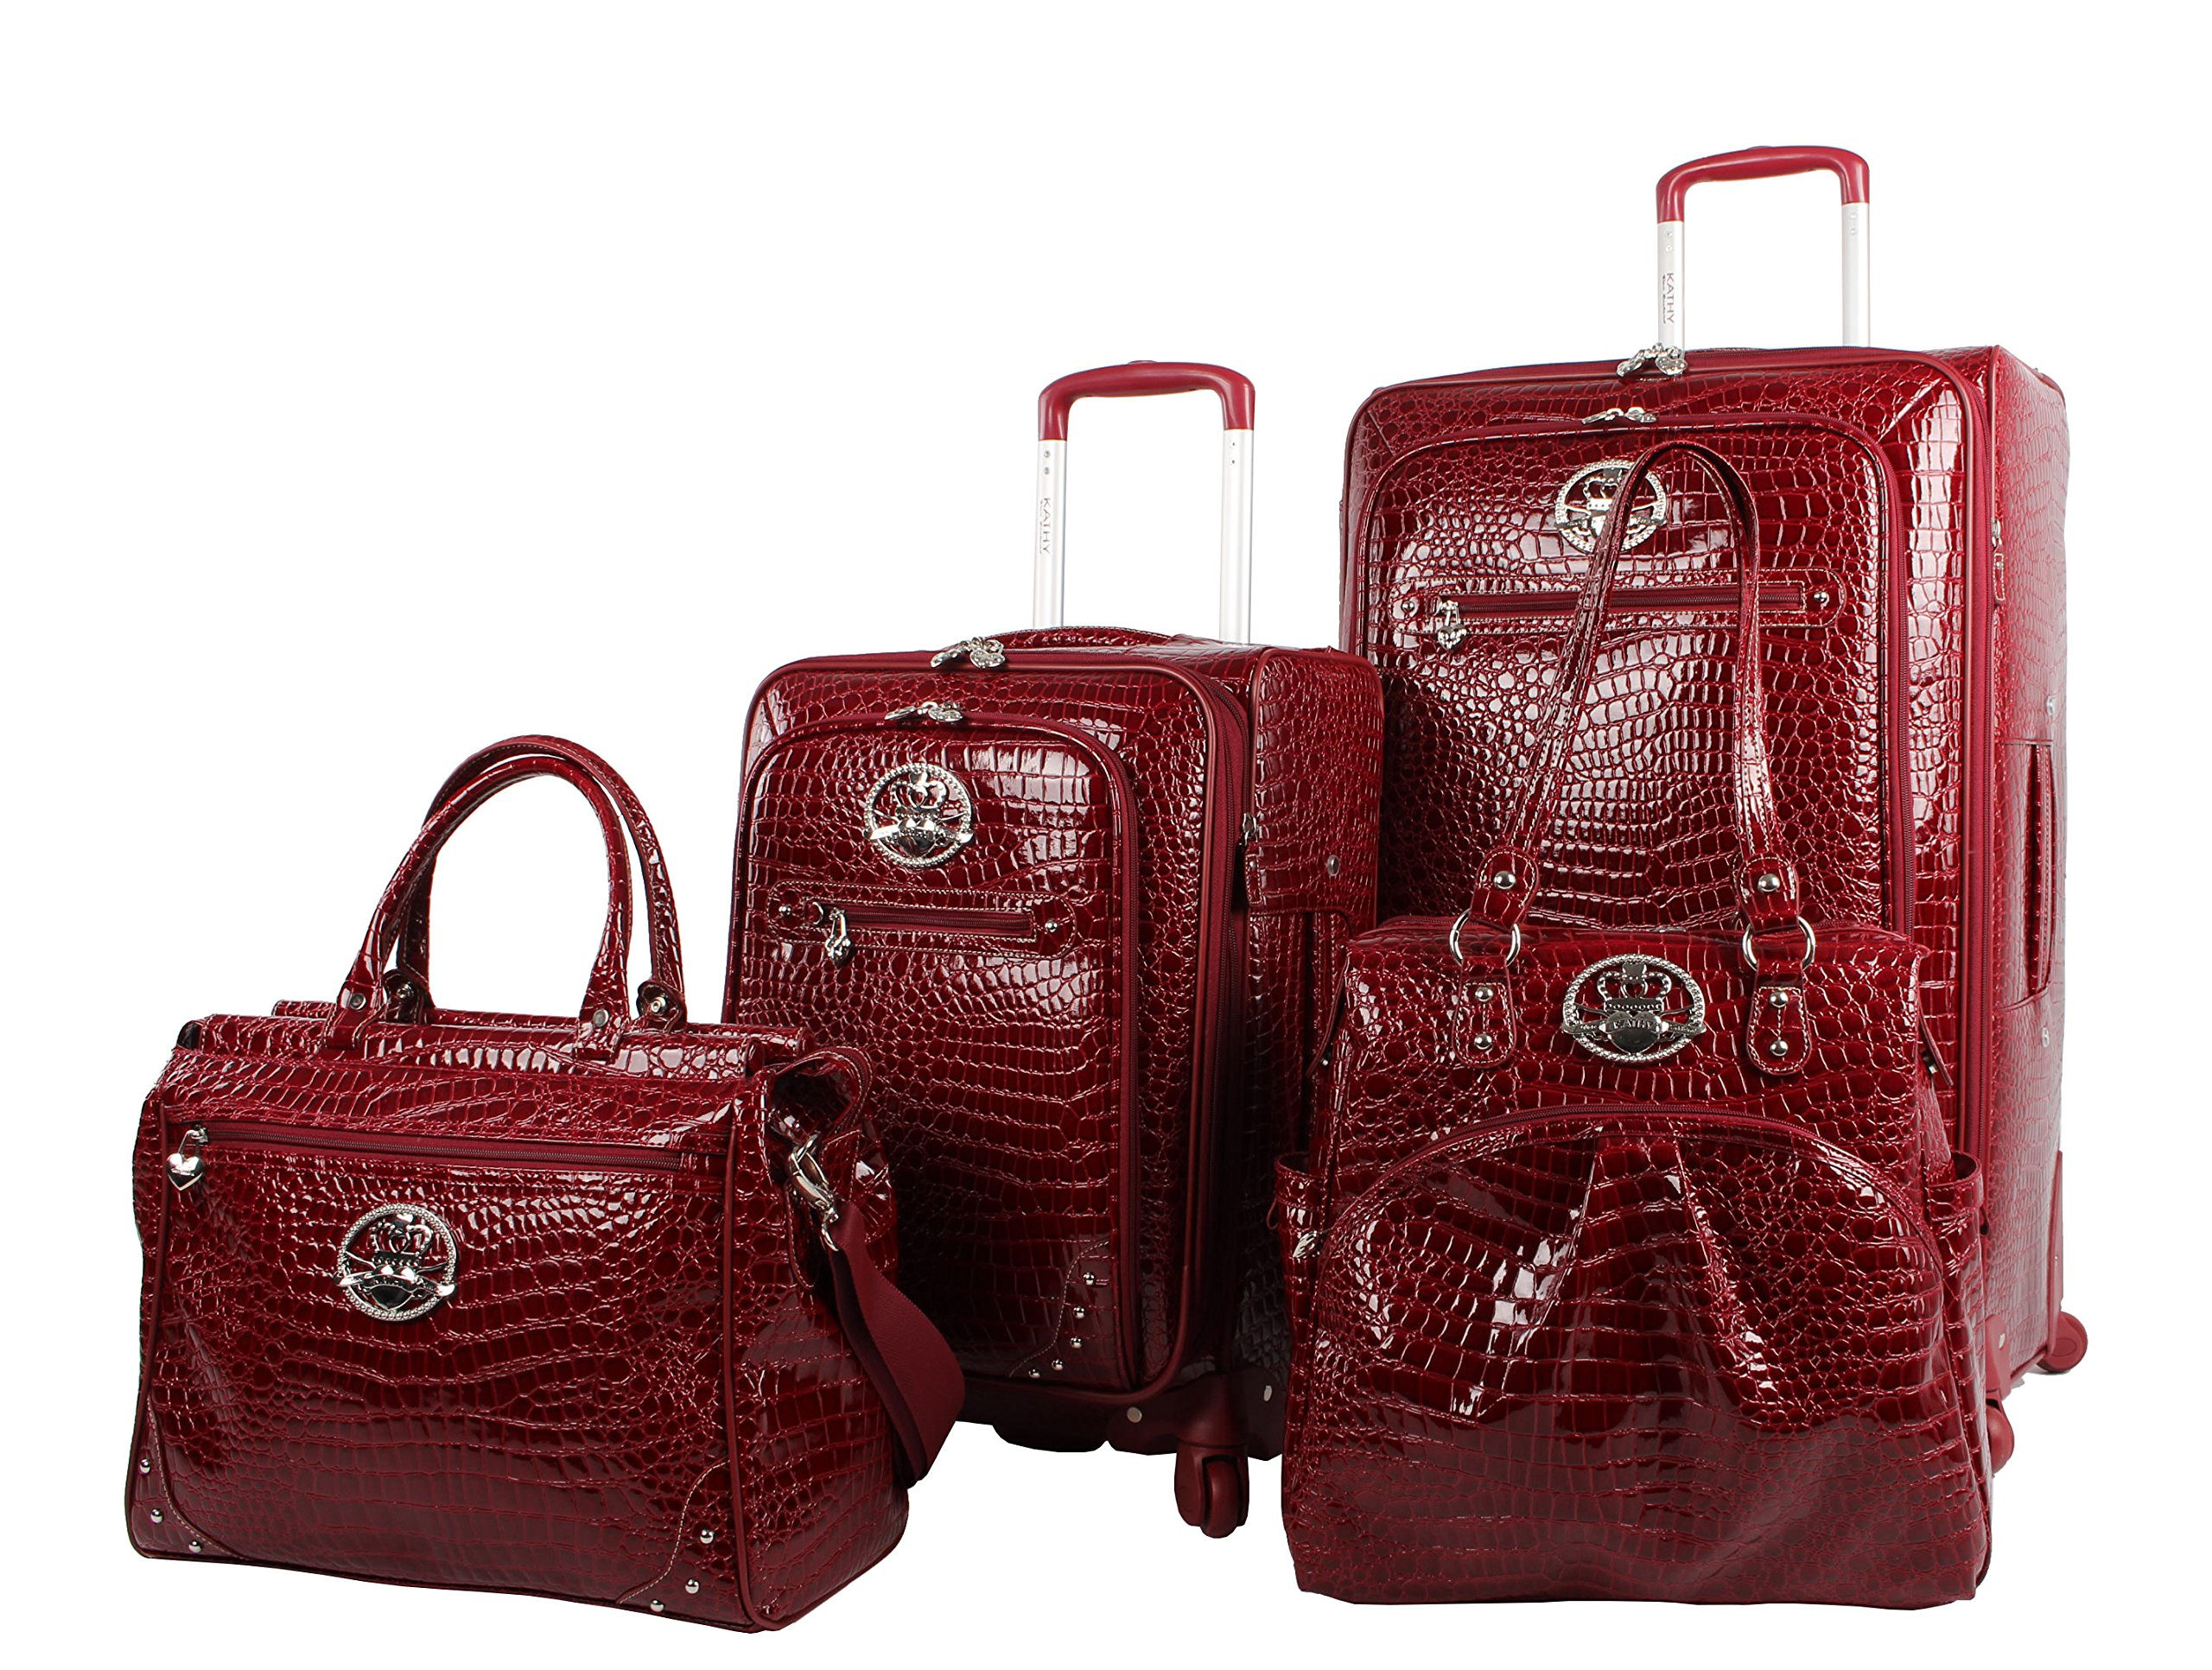 Kathy Van Zeeland Croco PVC Luggage Set 4 Piece Expandable Suitcase with Spinner Wheels (One Size, Burgendy)